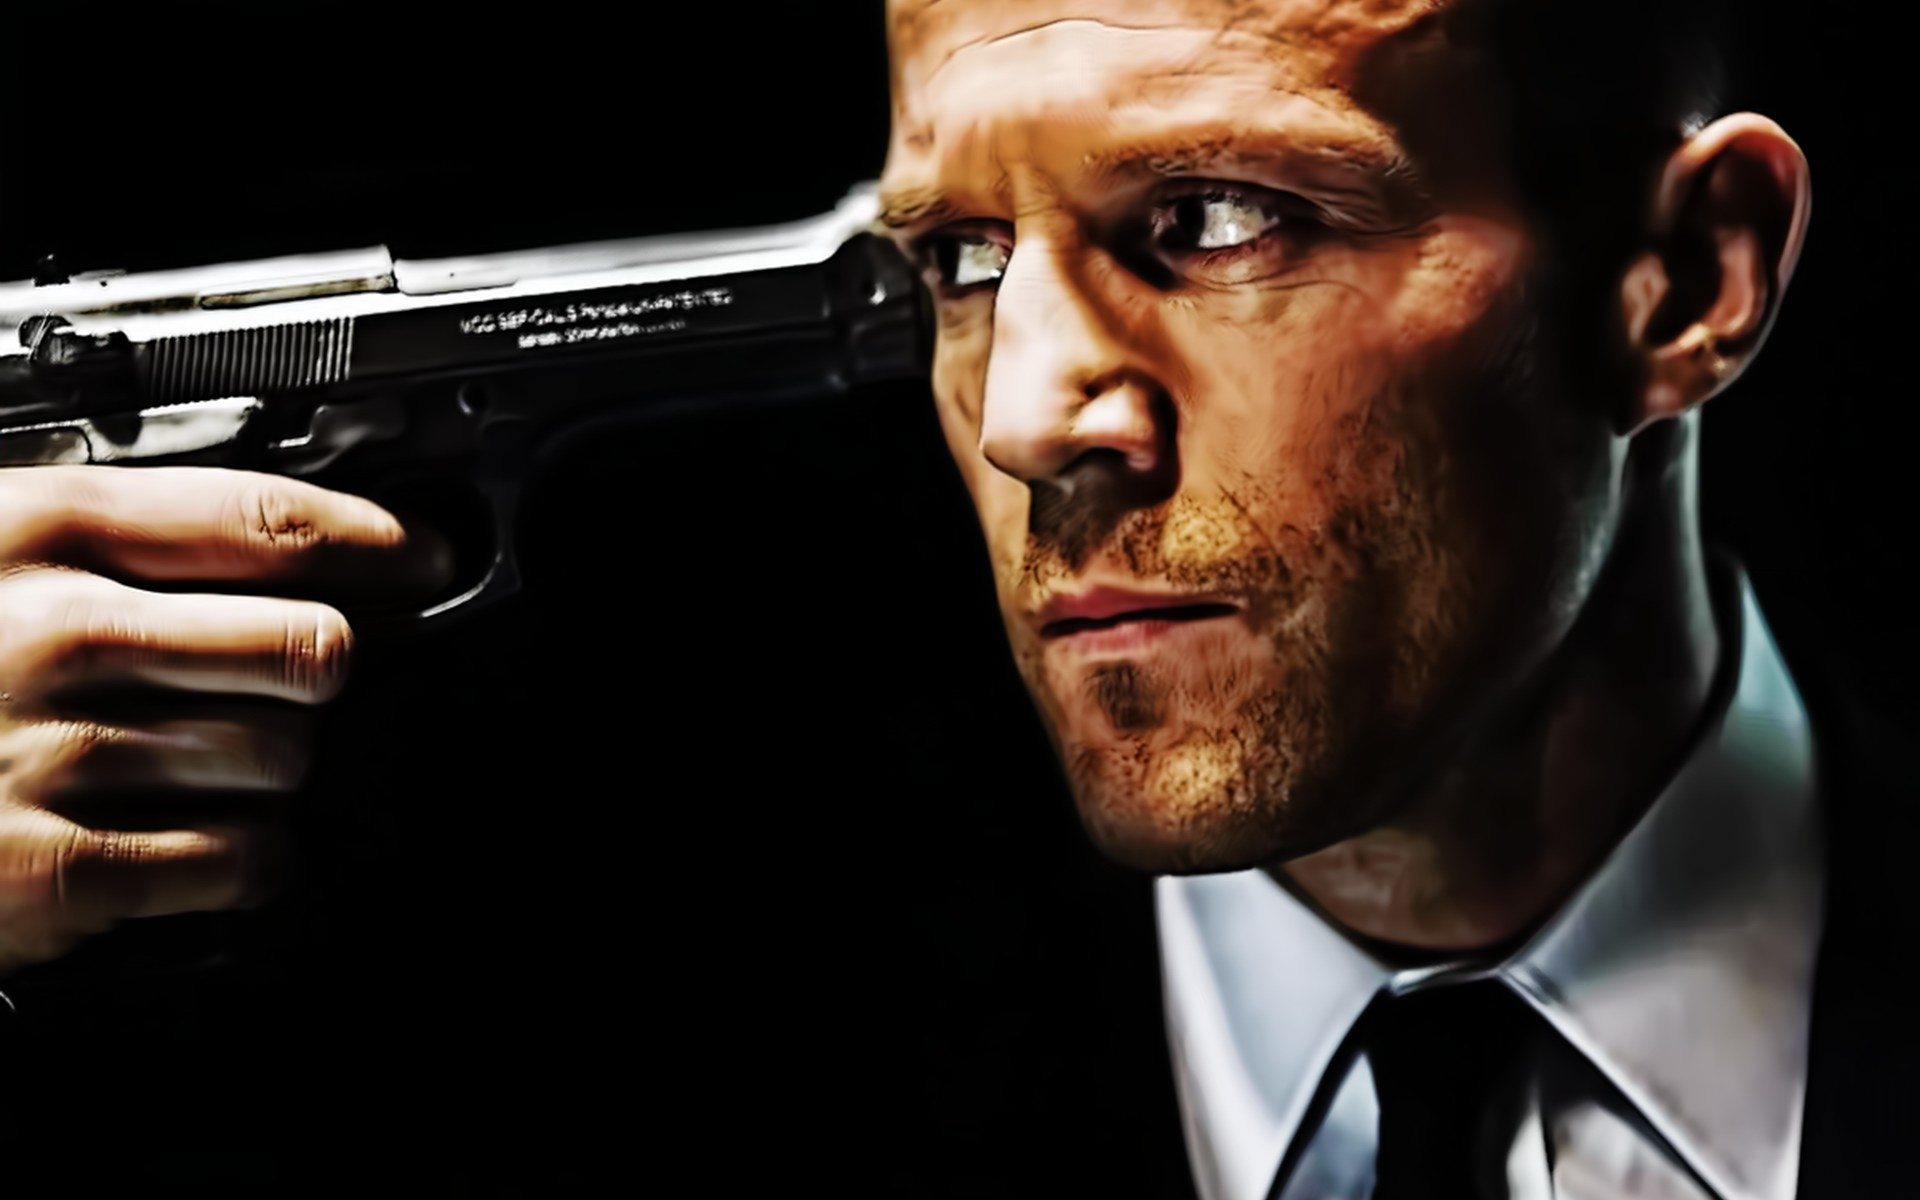 Jason Statham HD Transporter Wallpaper